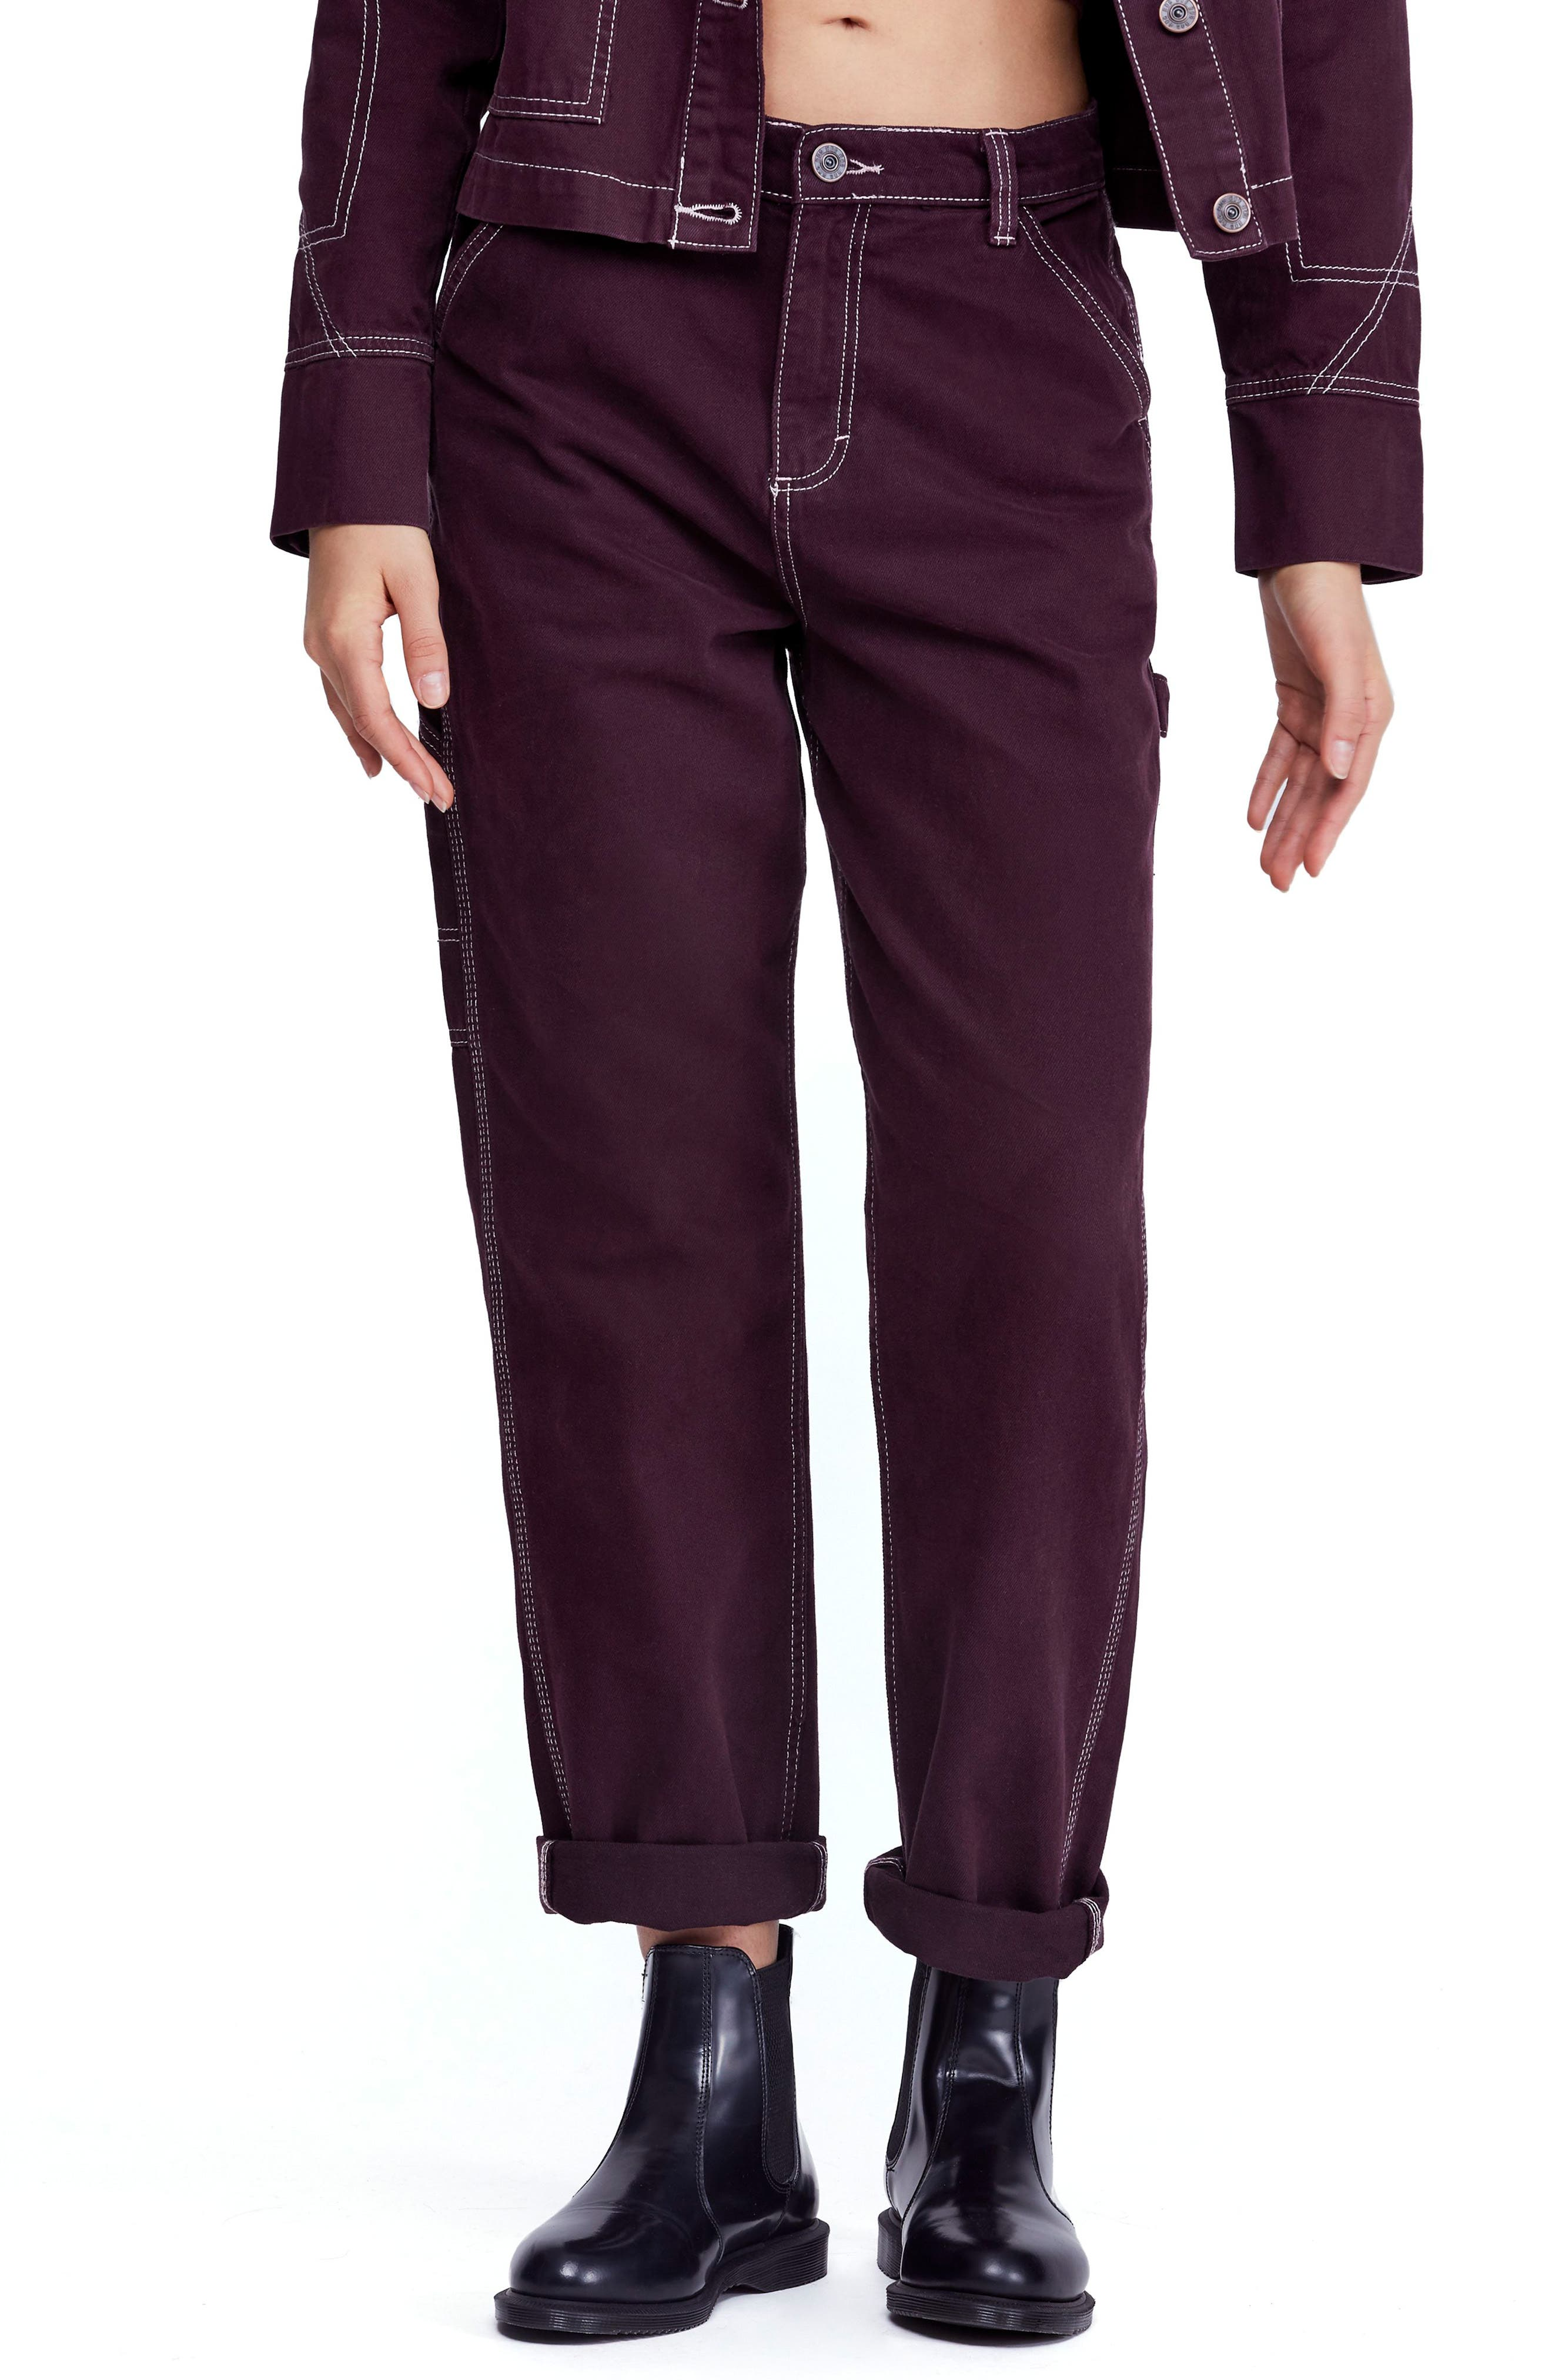 Urban Outfitters Workwear Pants,                             Main thumbnail 1, color,                             WINE